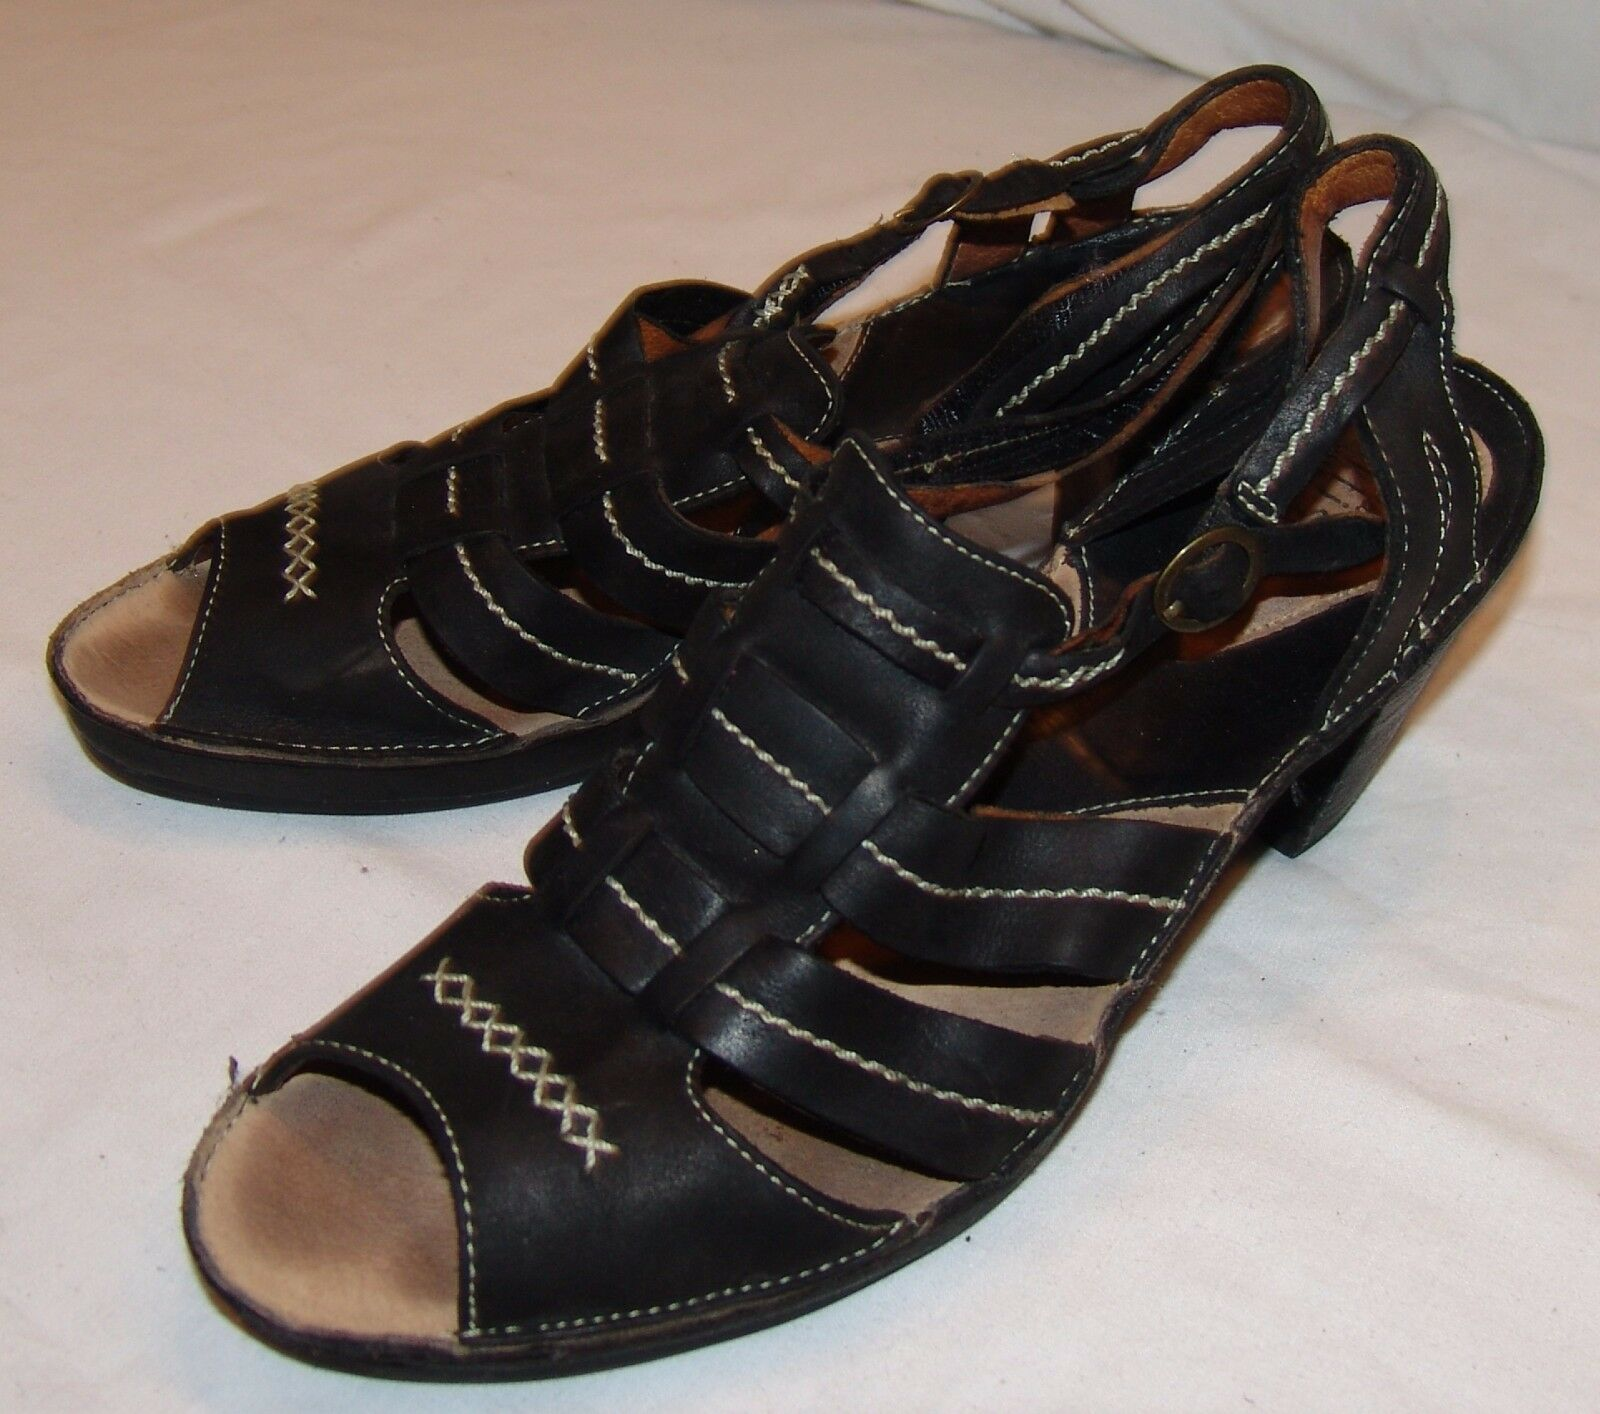 Clarks Artisan Black Leather Sandals 9M Womens Strappy Heels